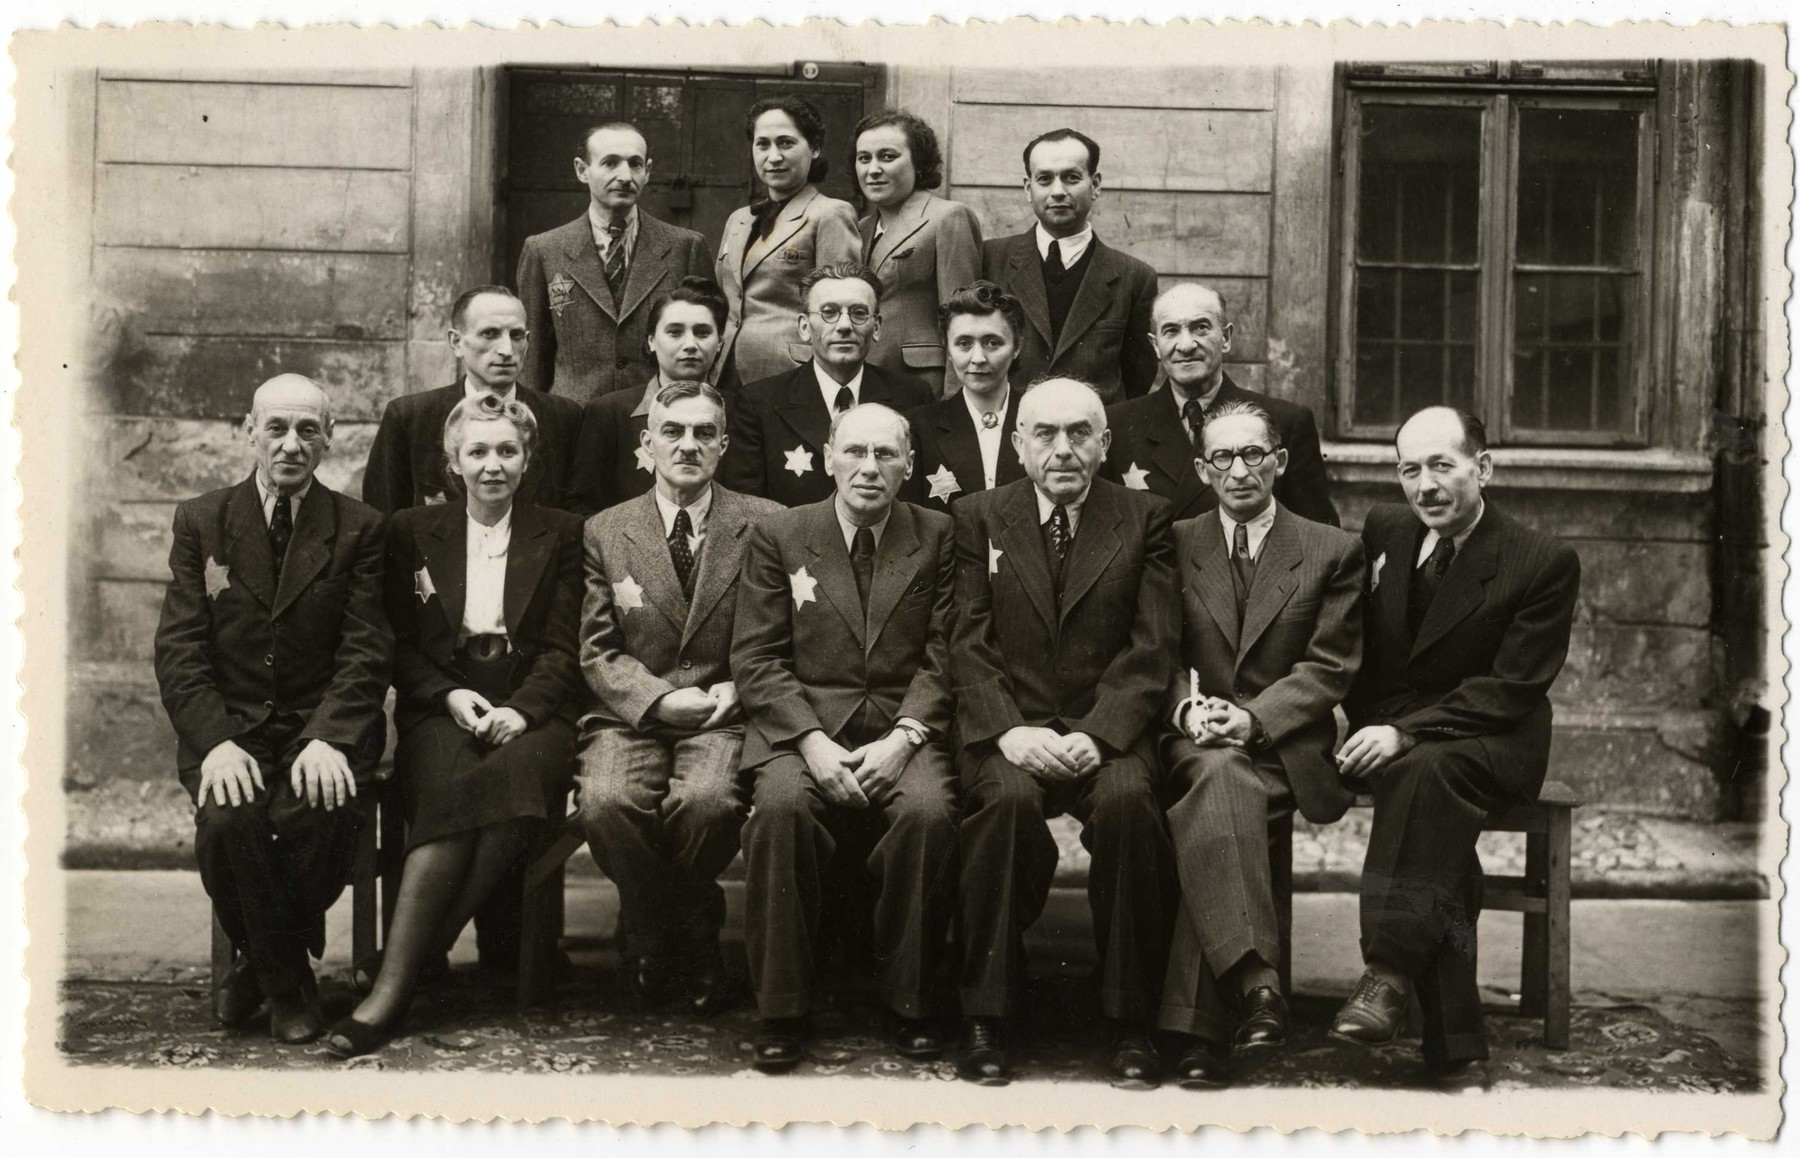 Group portrait of the employees of the Zentral Einkaufstelle, the central supply warehouse of the ghetto which provided raw materials to the other ghetto workshops.  Pictured in the front row, second from the left is Stefa (the secretary), third from the left is Gustaw Gerson, the director of the Einkaufstelle.  To his immediate right and in the center of the photograph is Dawid Warszawski, head of the textile workshops, and next to him is Lipnowski, co-director of the Einkaufstelle.